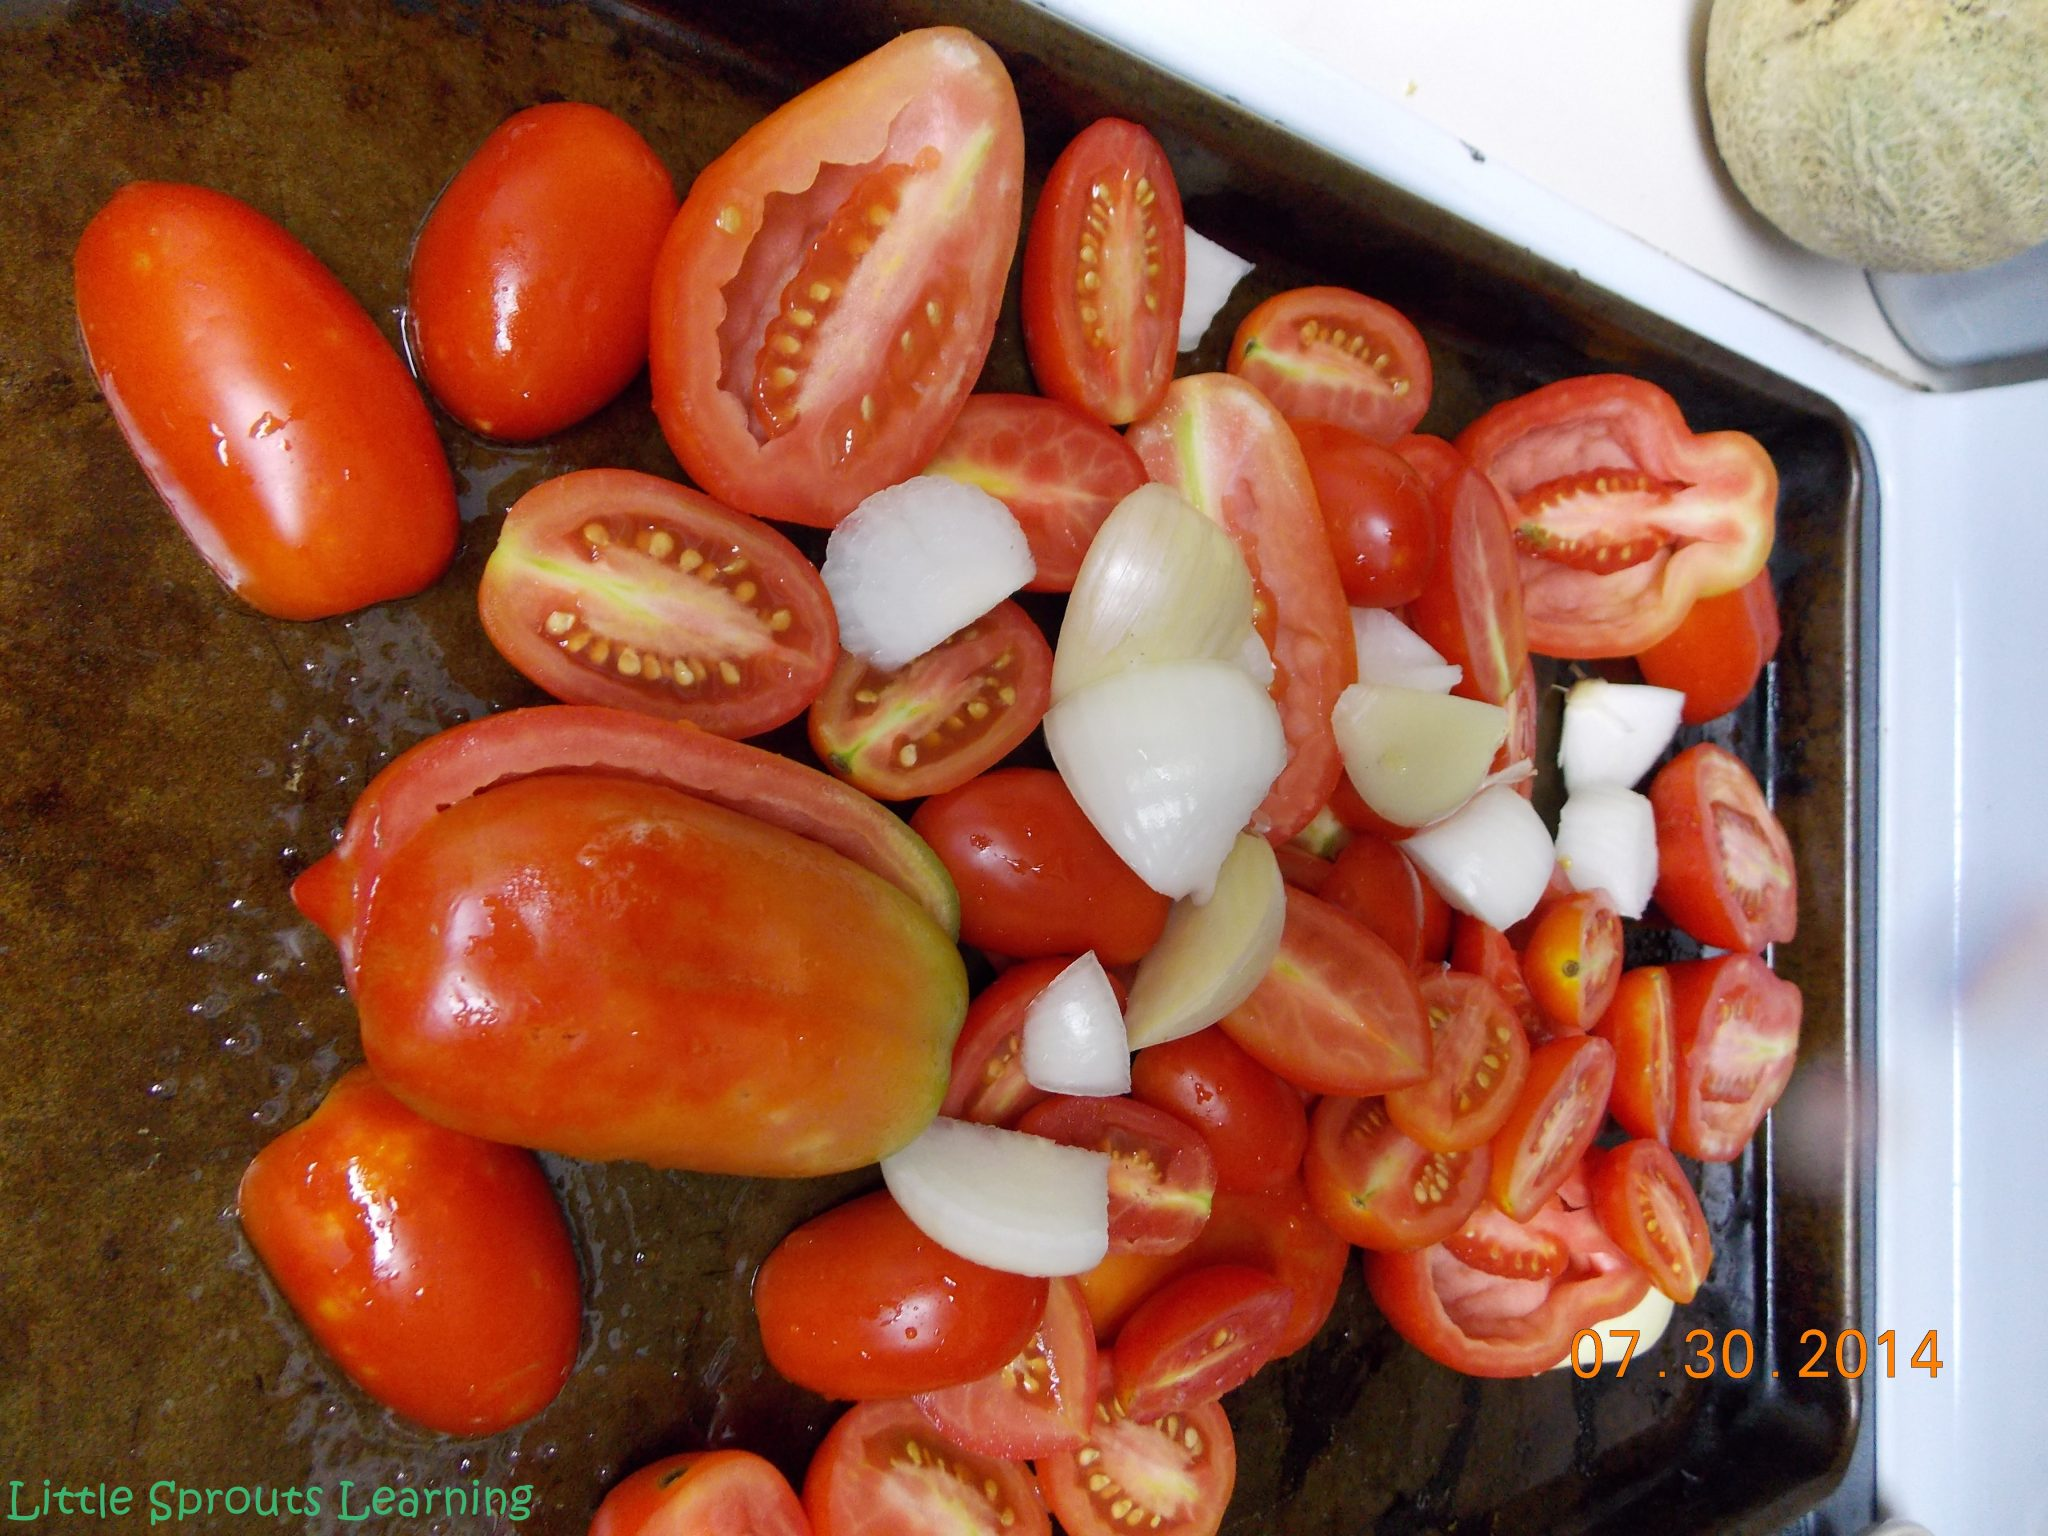 tomatoes cut in half on sheet pan with cloves of garlic and chopped onions for making roasted tomato sauce